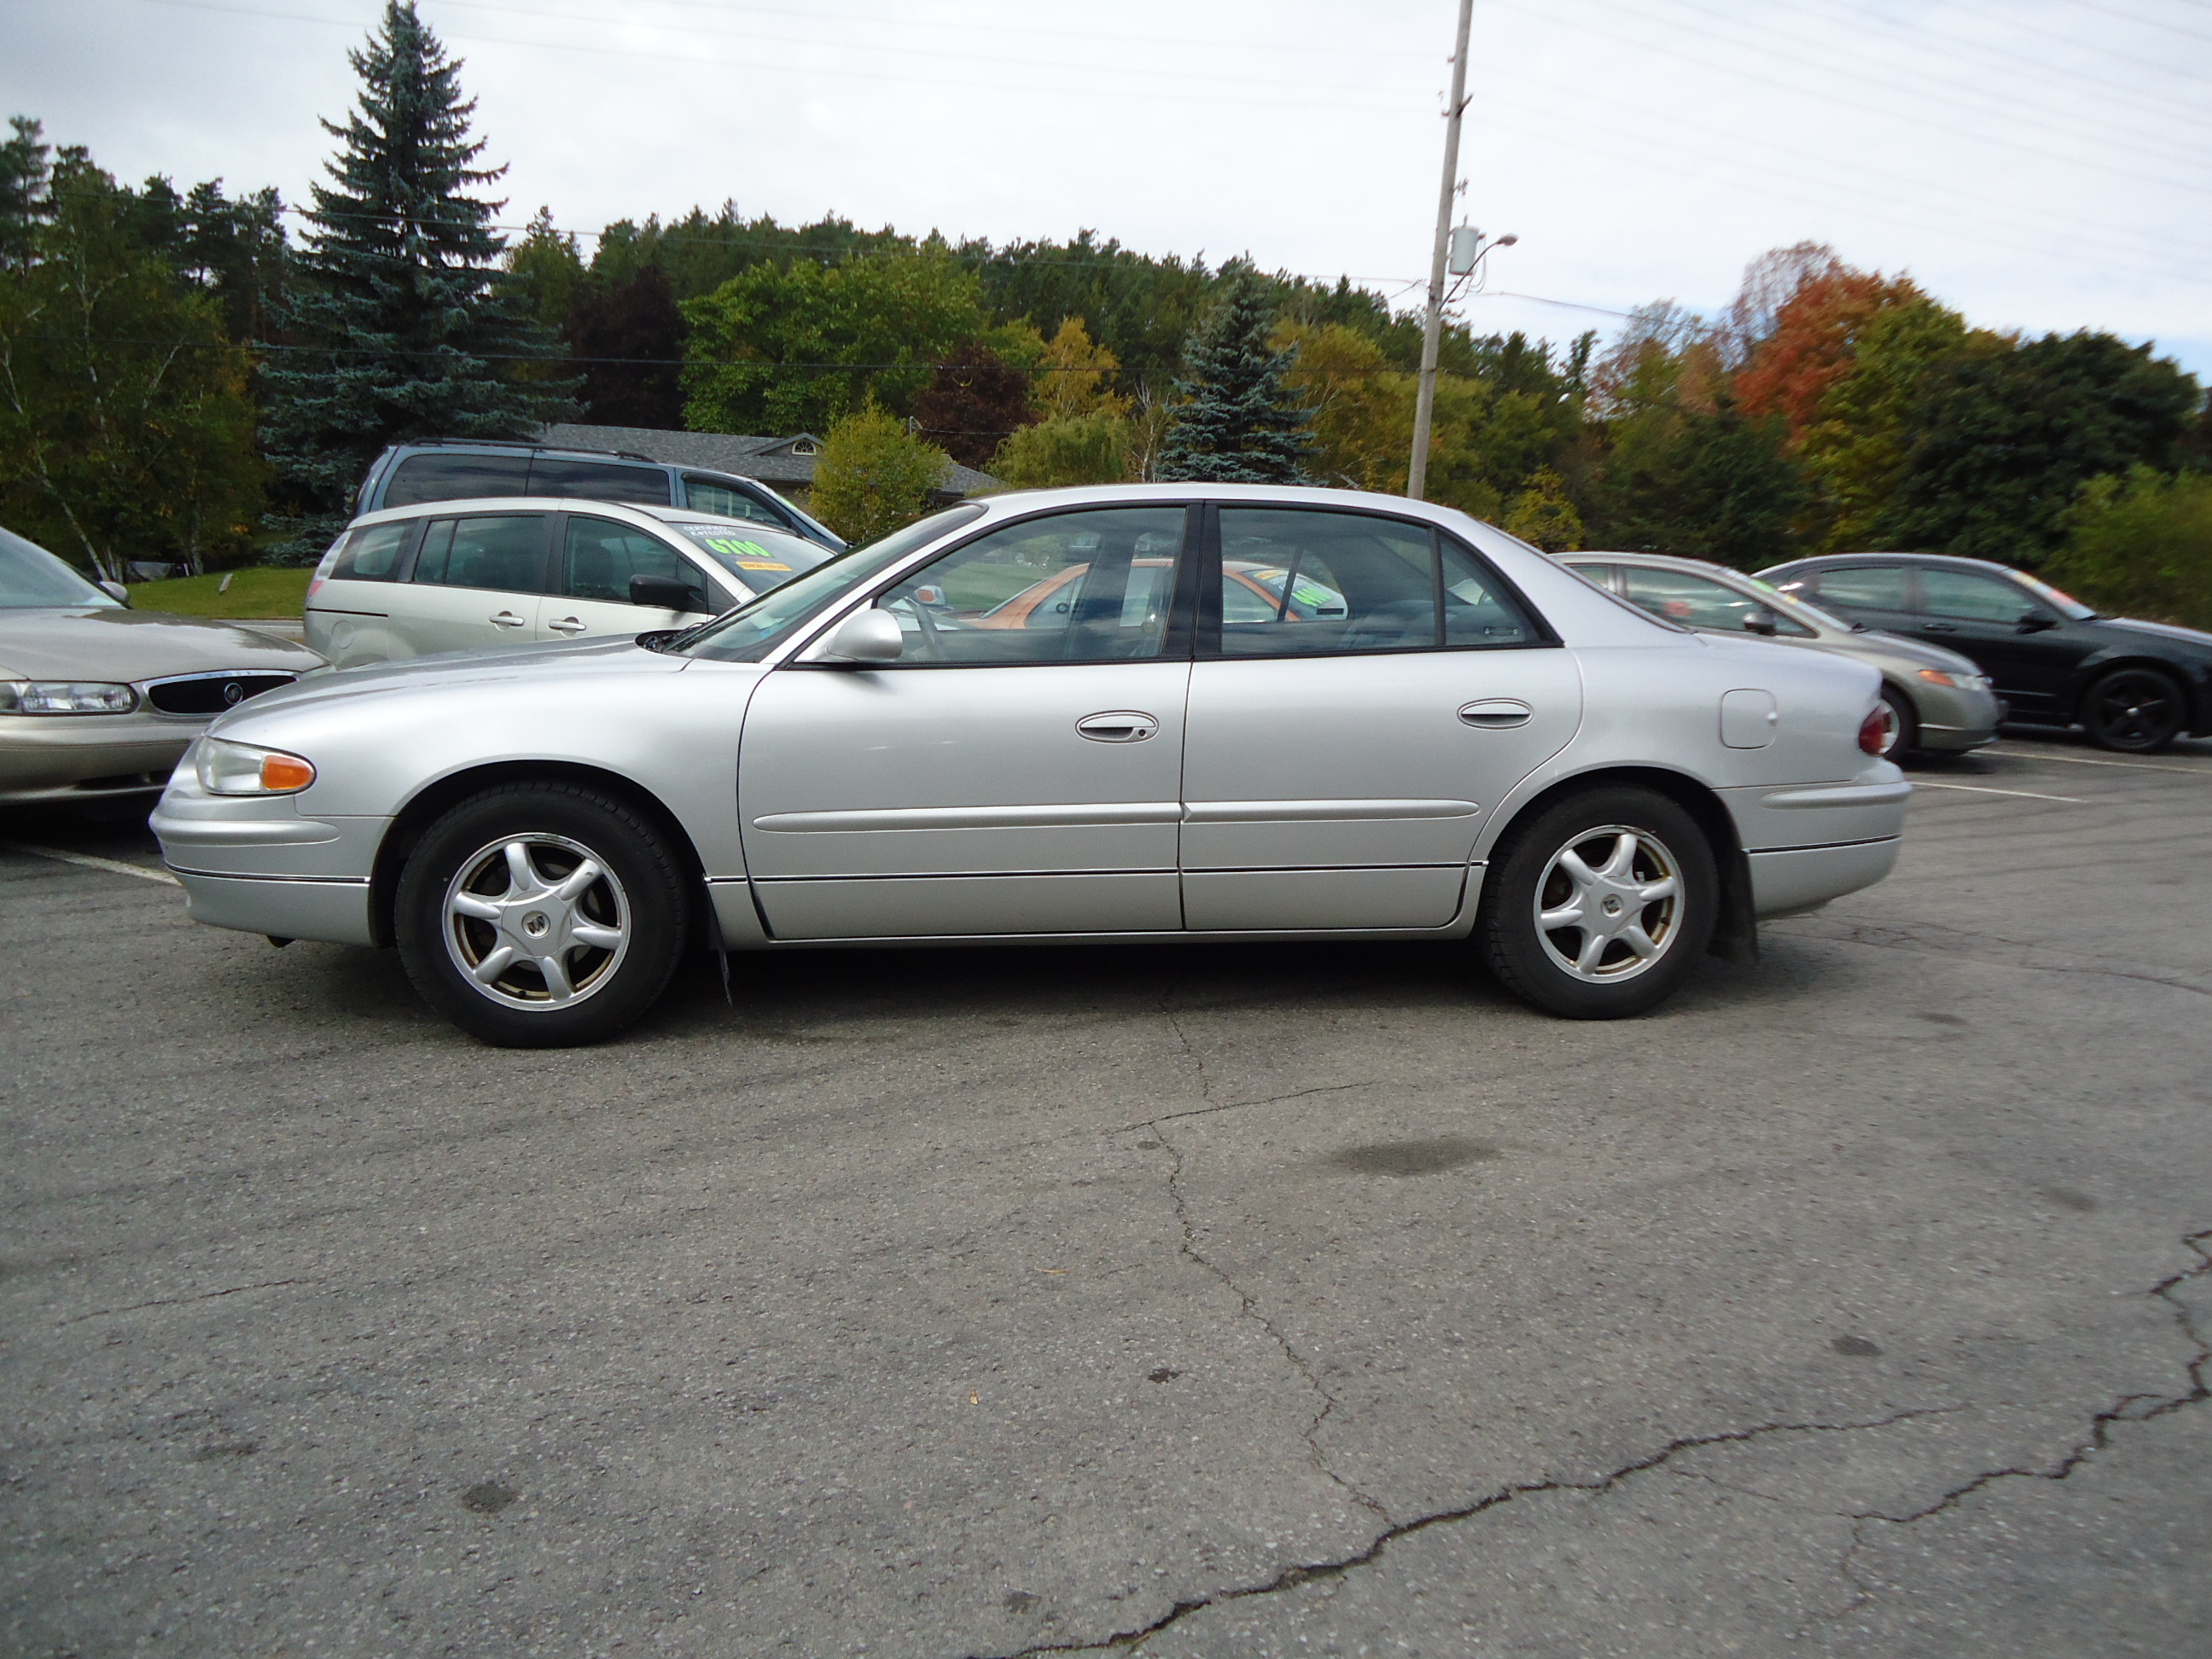 2002 BUICK REGAL SILVER WITH LEATHER (6) | Bob Currie Auto ...